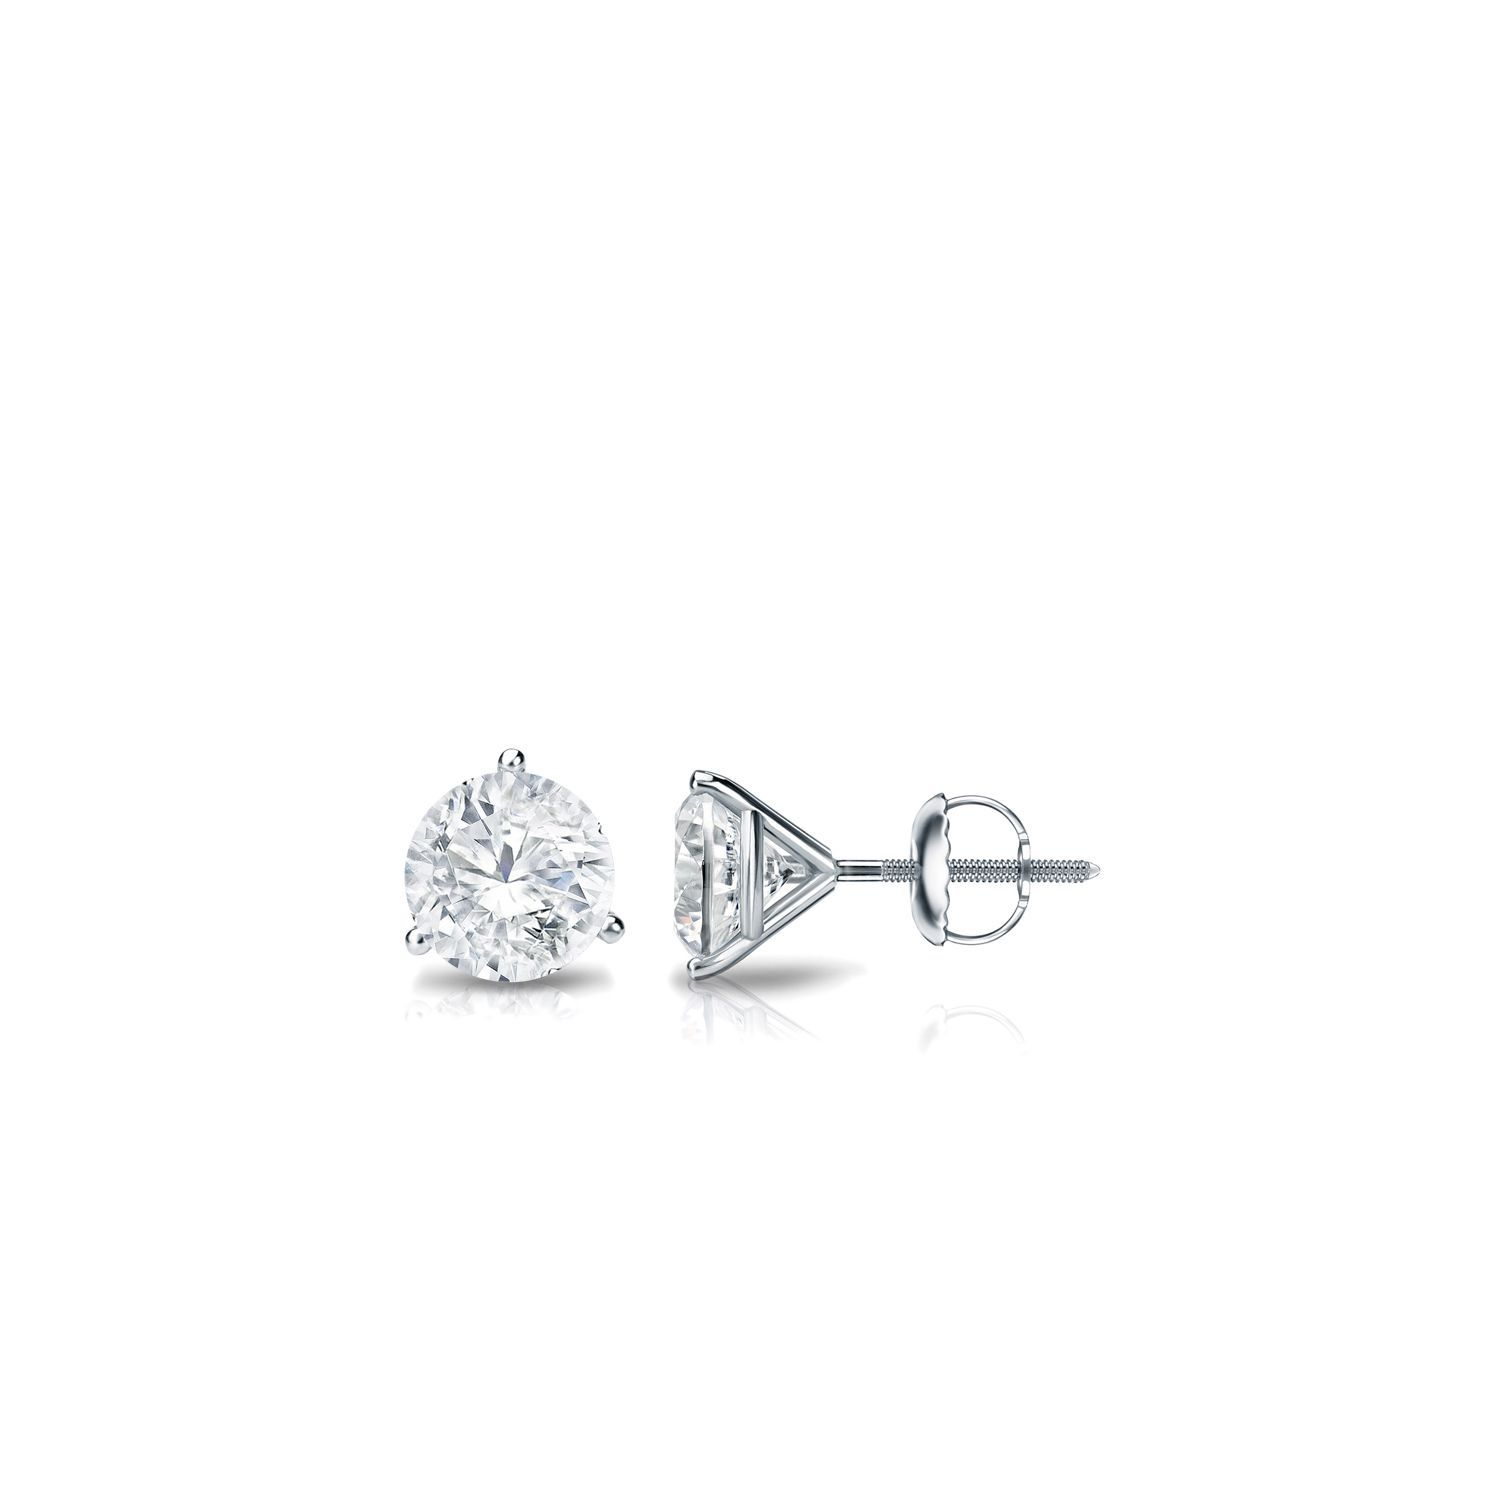 piercing pcs prong earrings stainless cz diamond shop product phoenix steel cartilage tragus jewelry rakuten stud